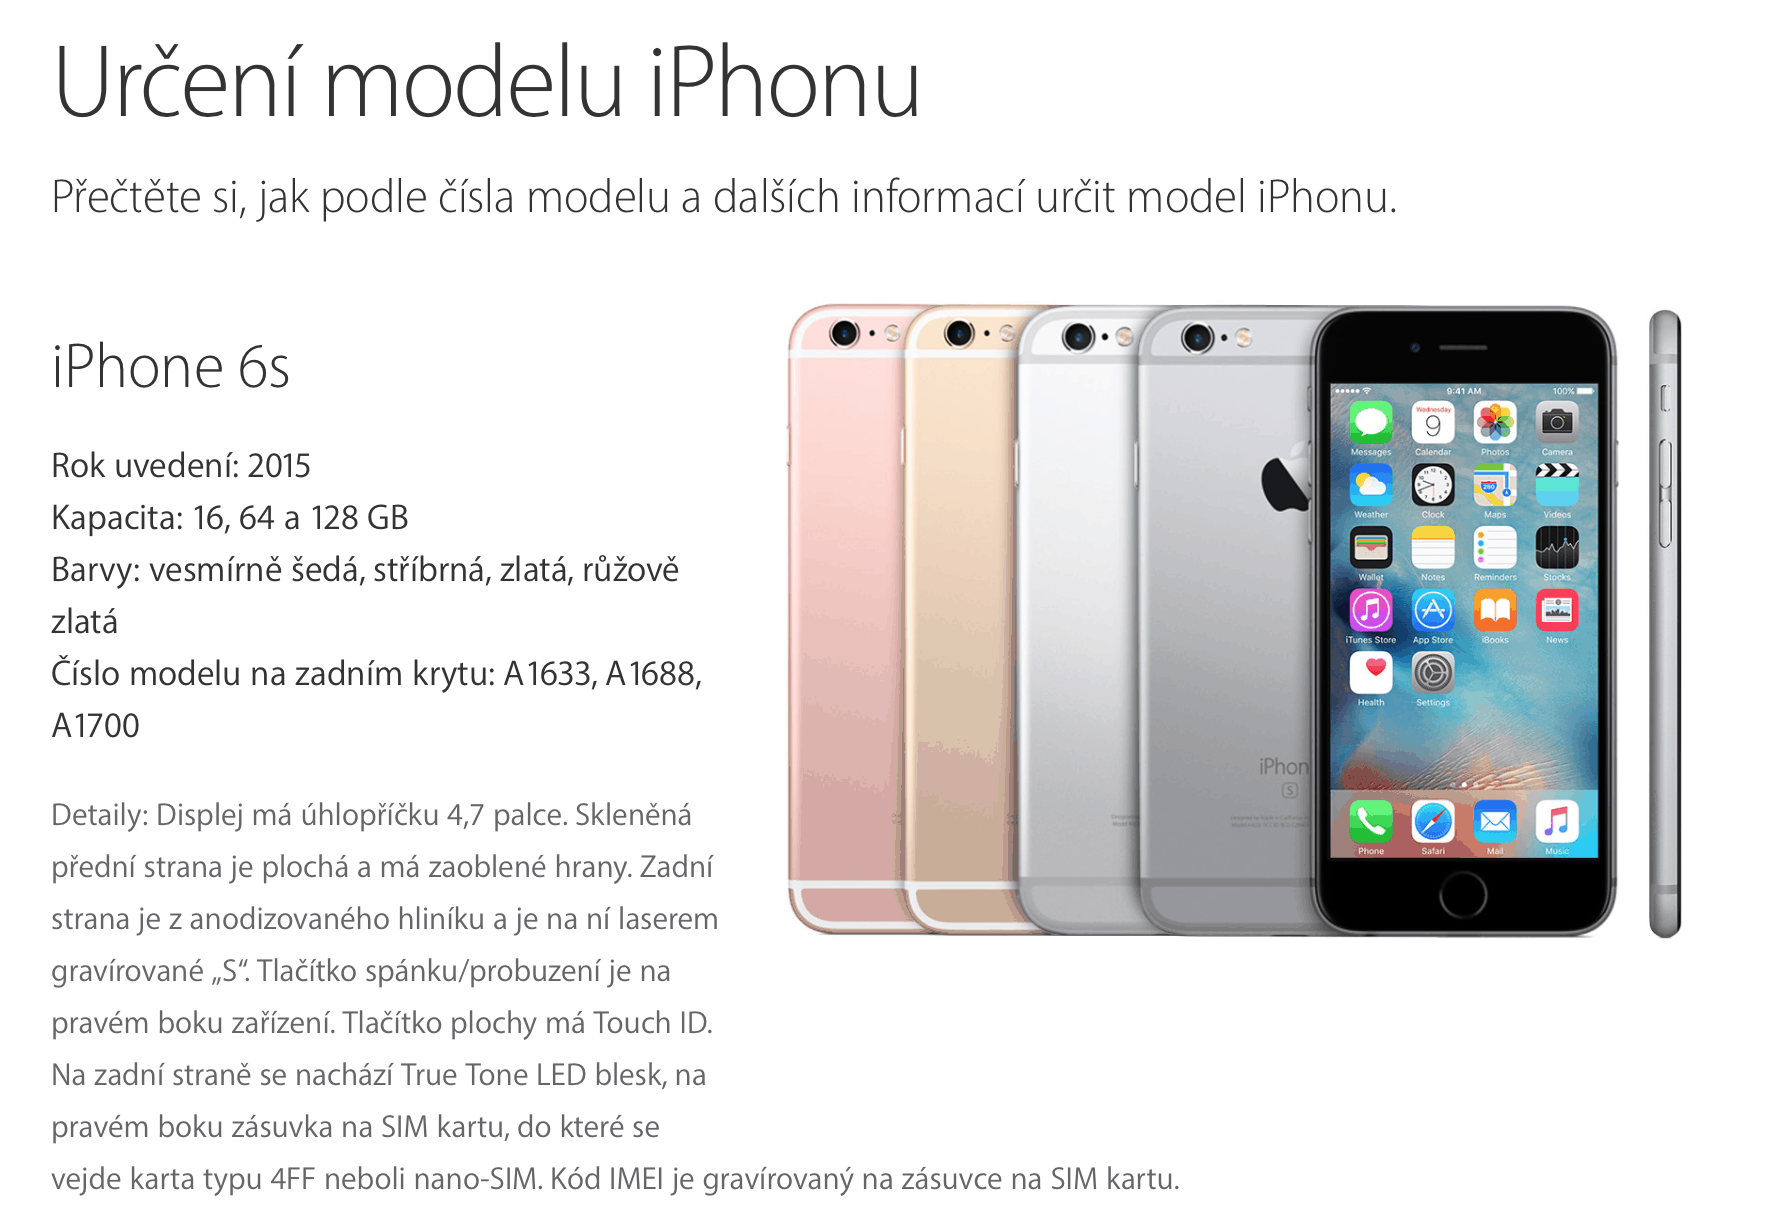 Urceni modelu iPhone SCR